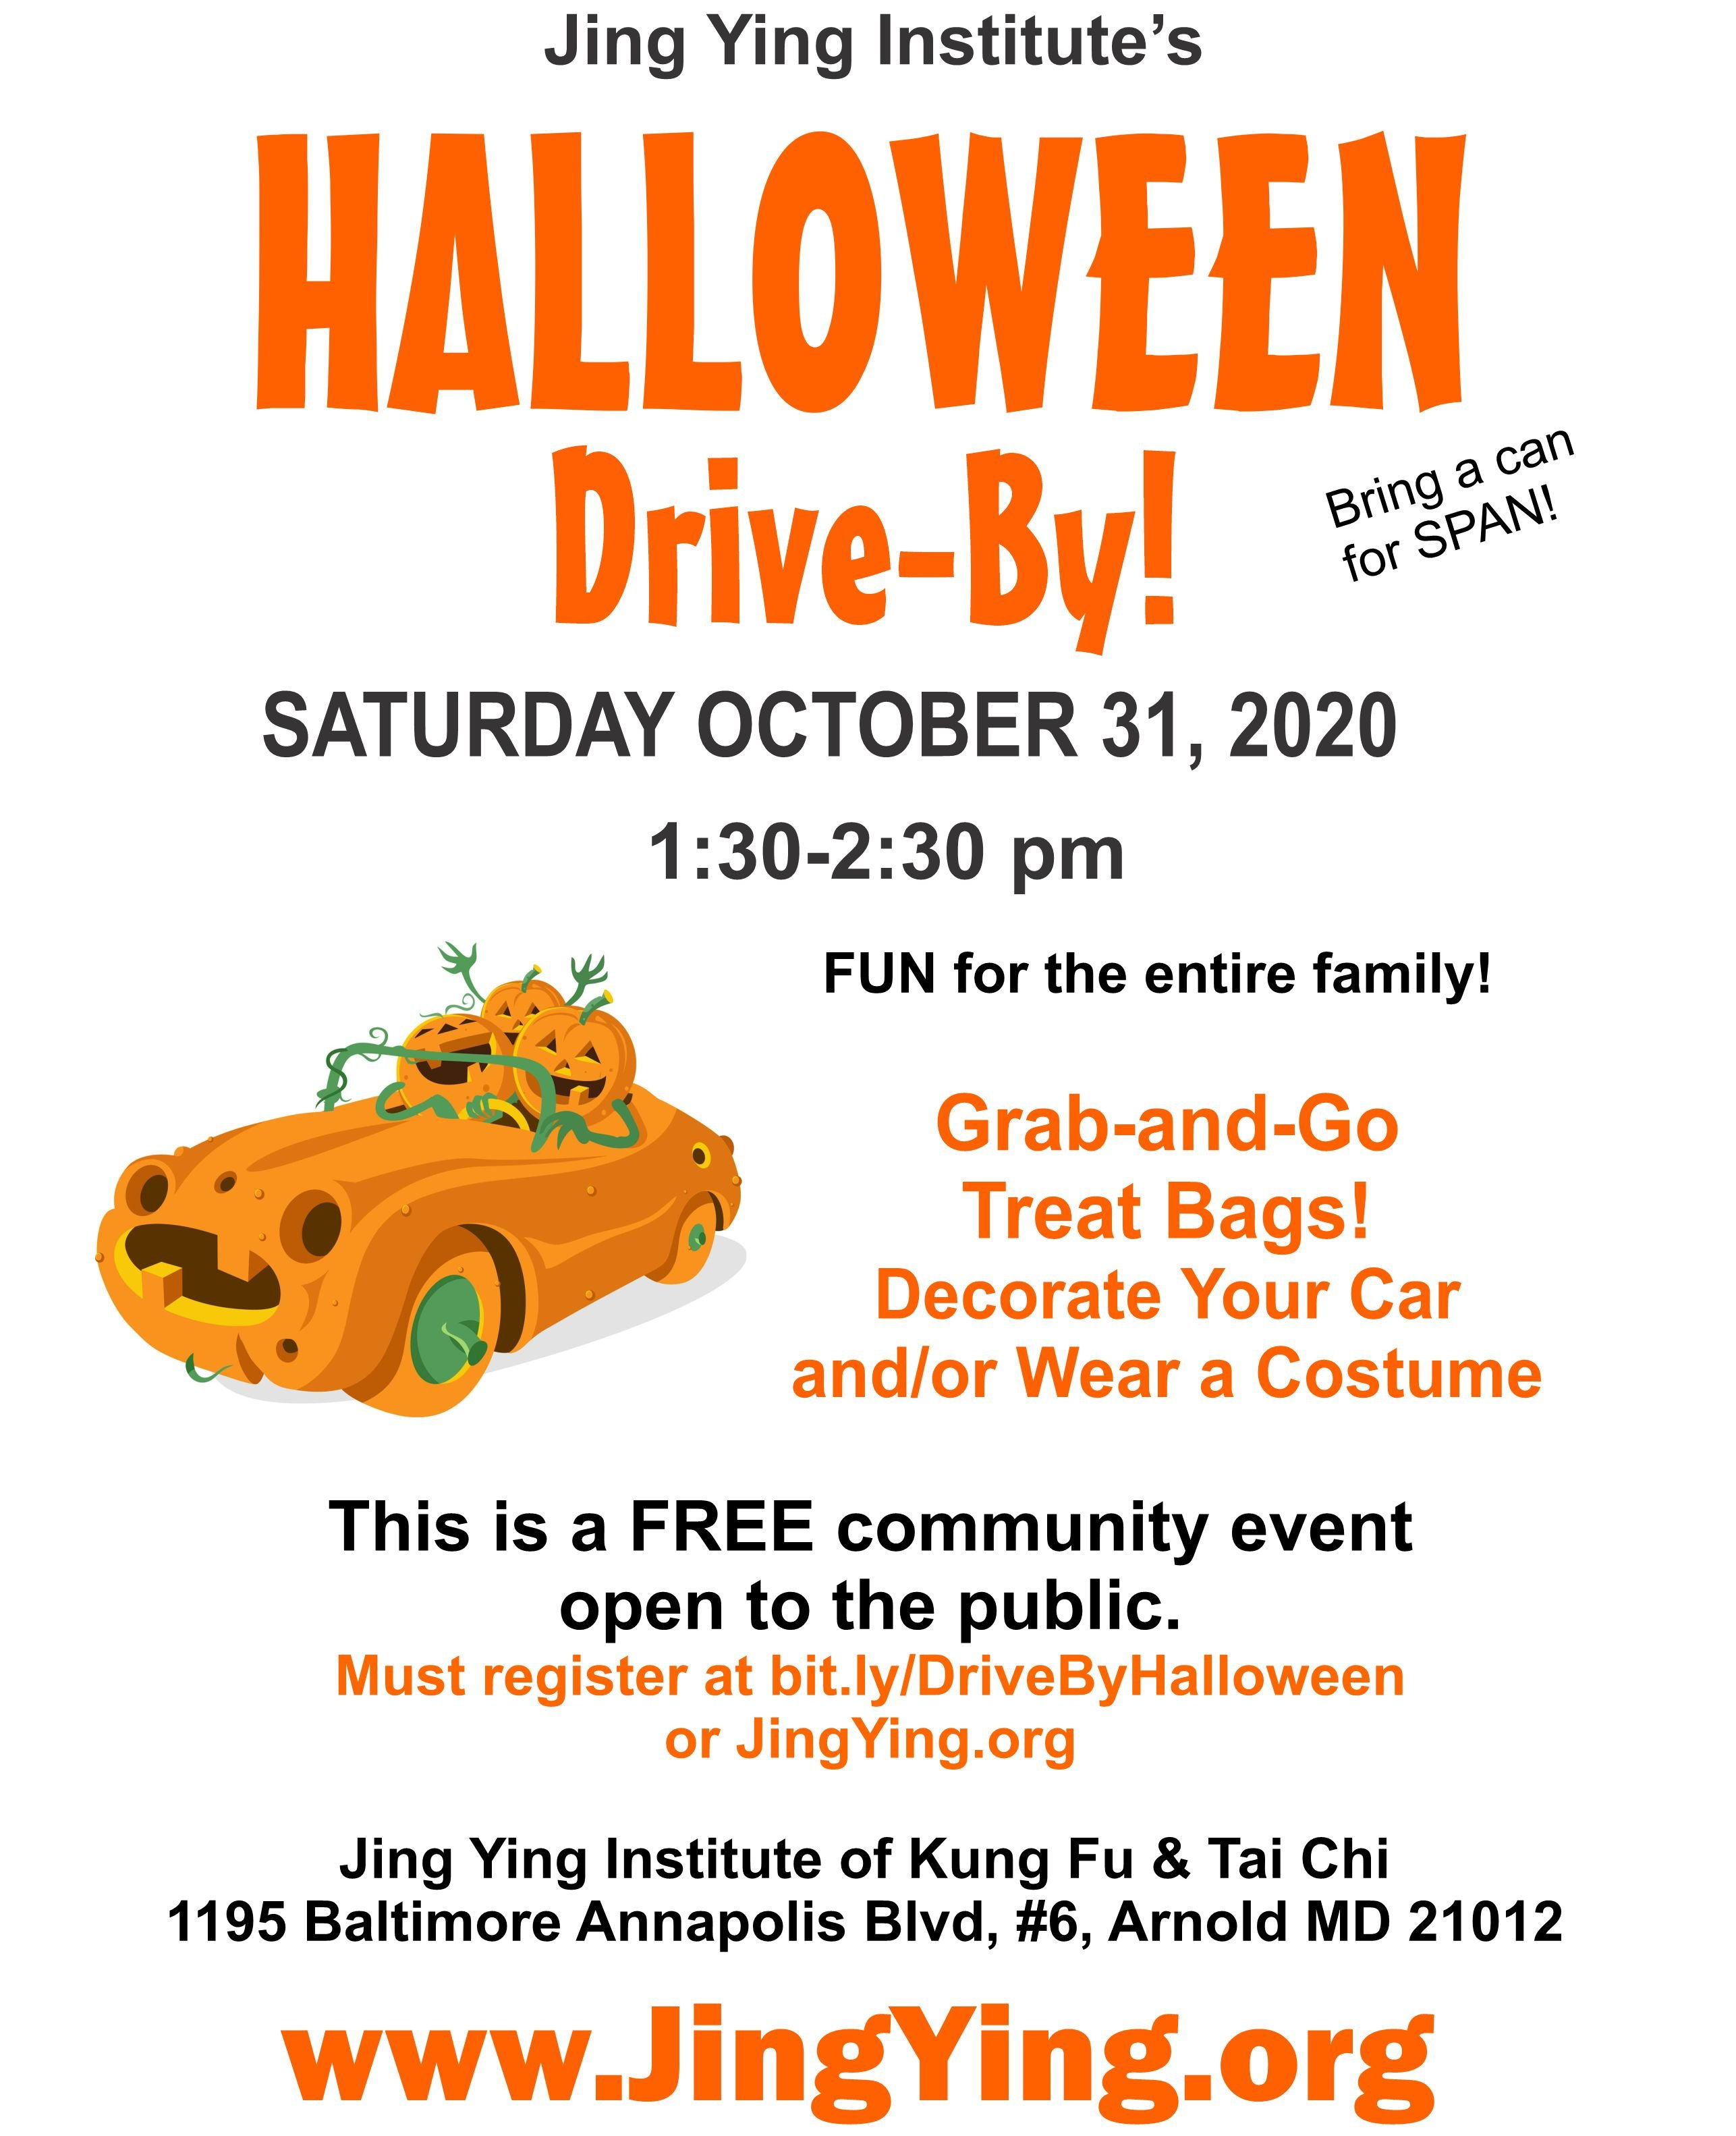 Halloween Events For Kids Annapolis 2020 Halloween Drive By (FREE)   What's Up? Media